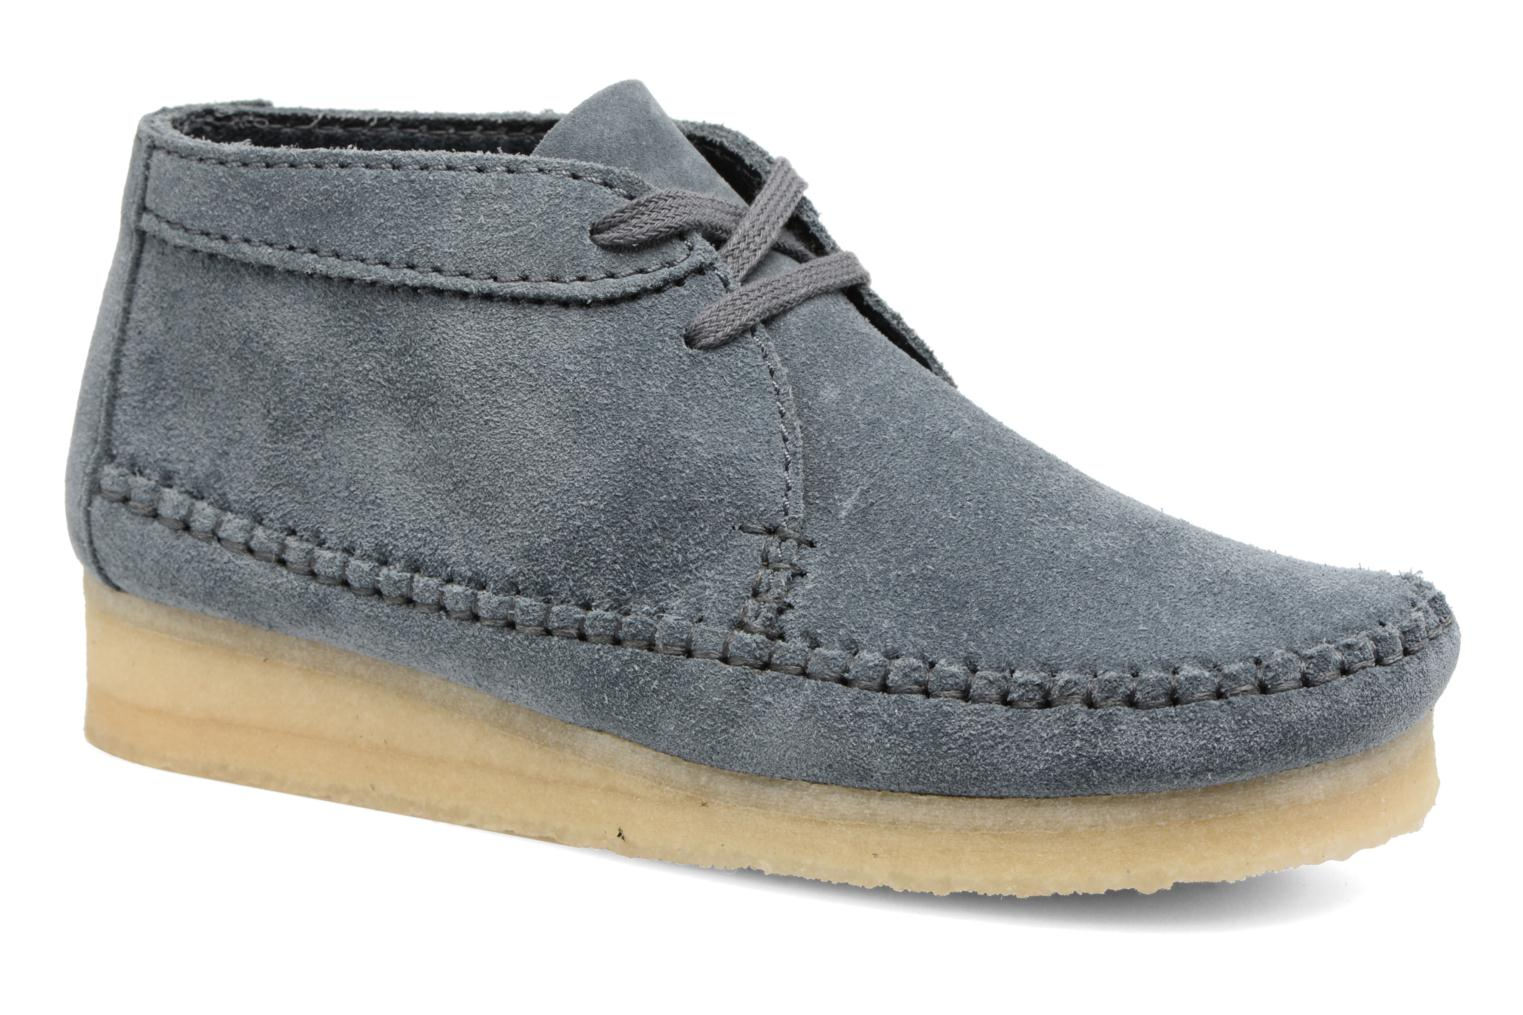 Bottines et boots Clarks Originals WEAVER BOOT W Bleu vue détail/paire